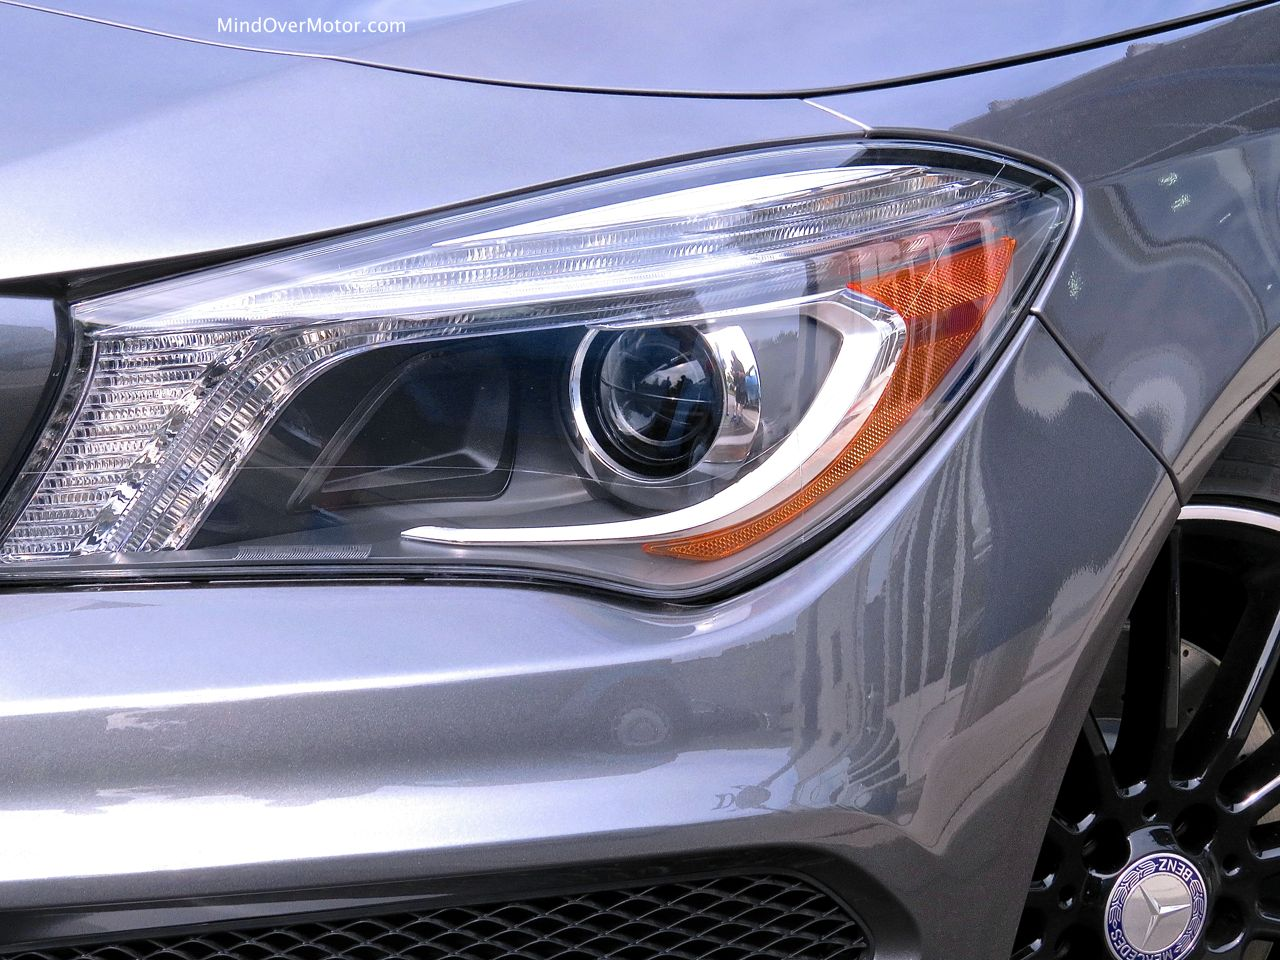 Mercedes-Benz CLA250 Headlight